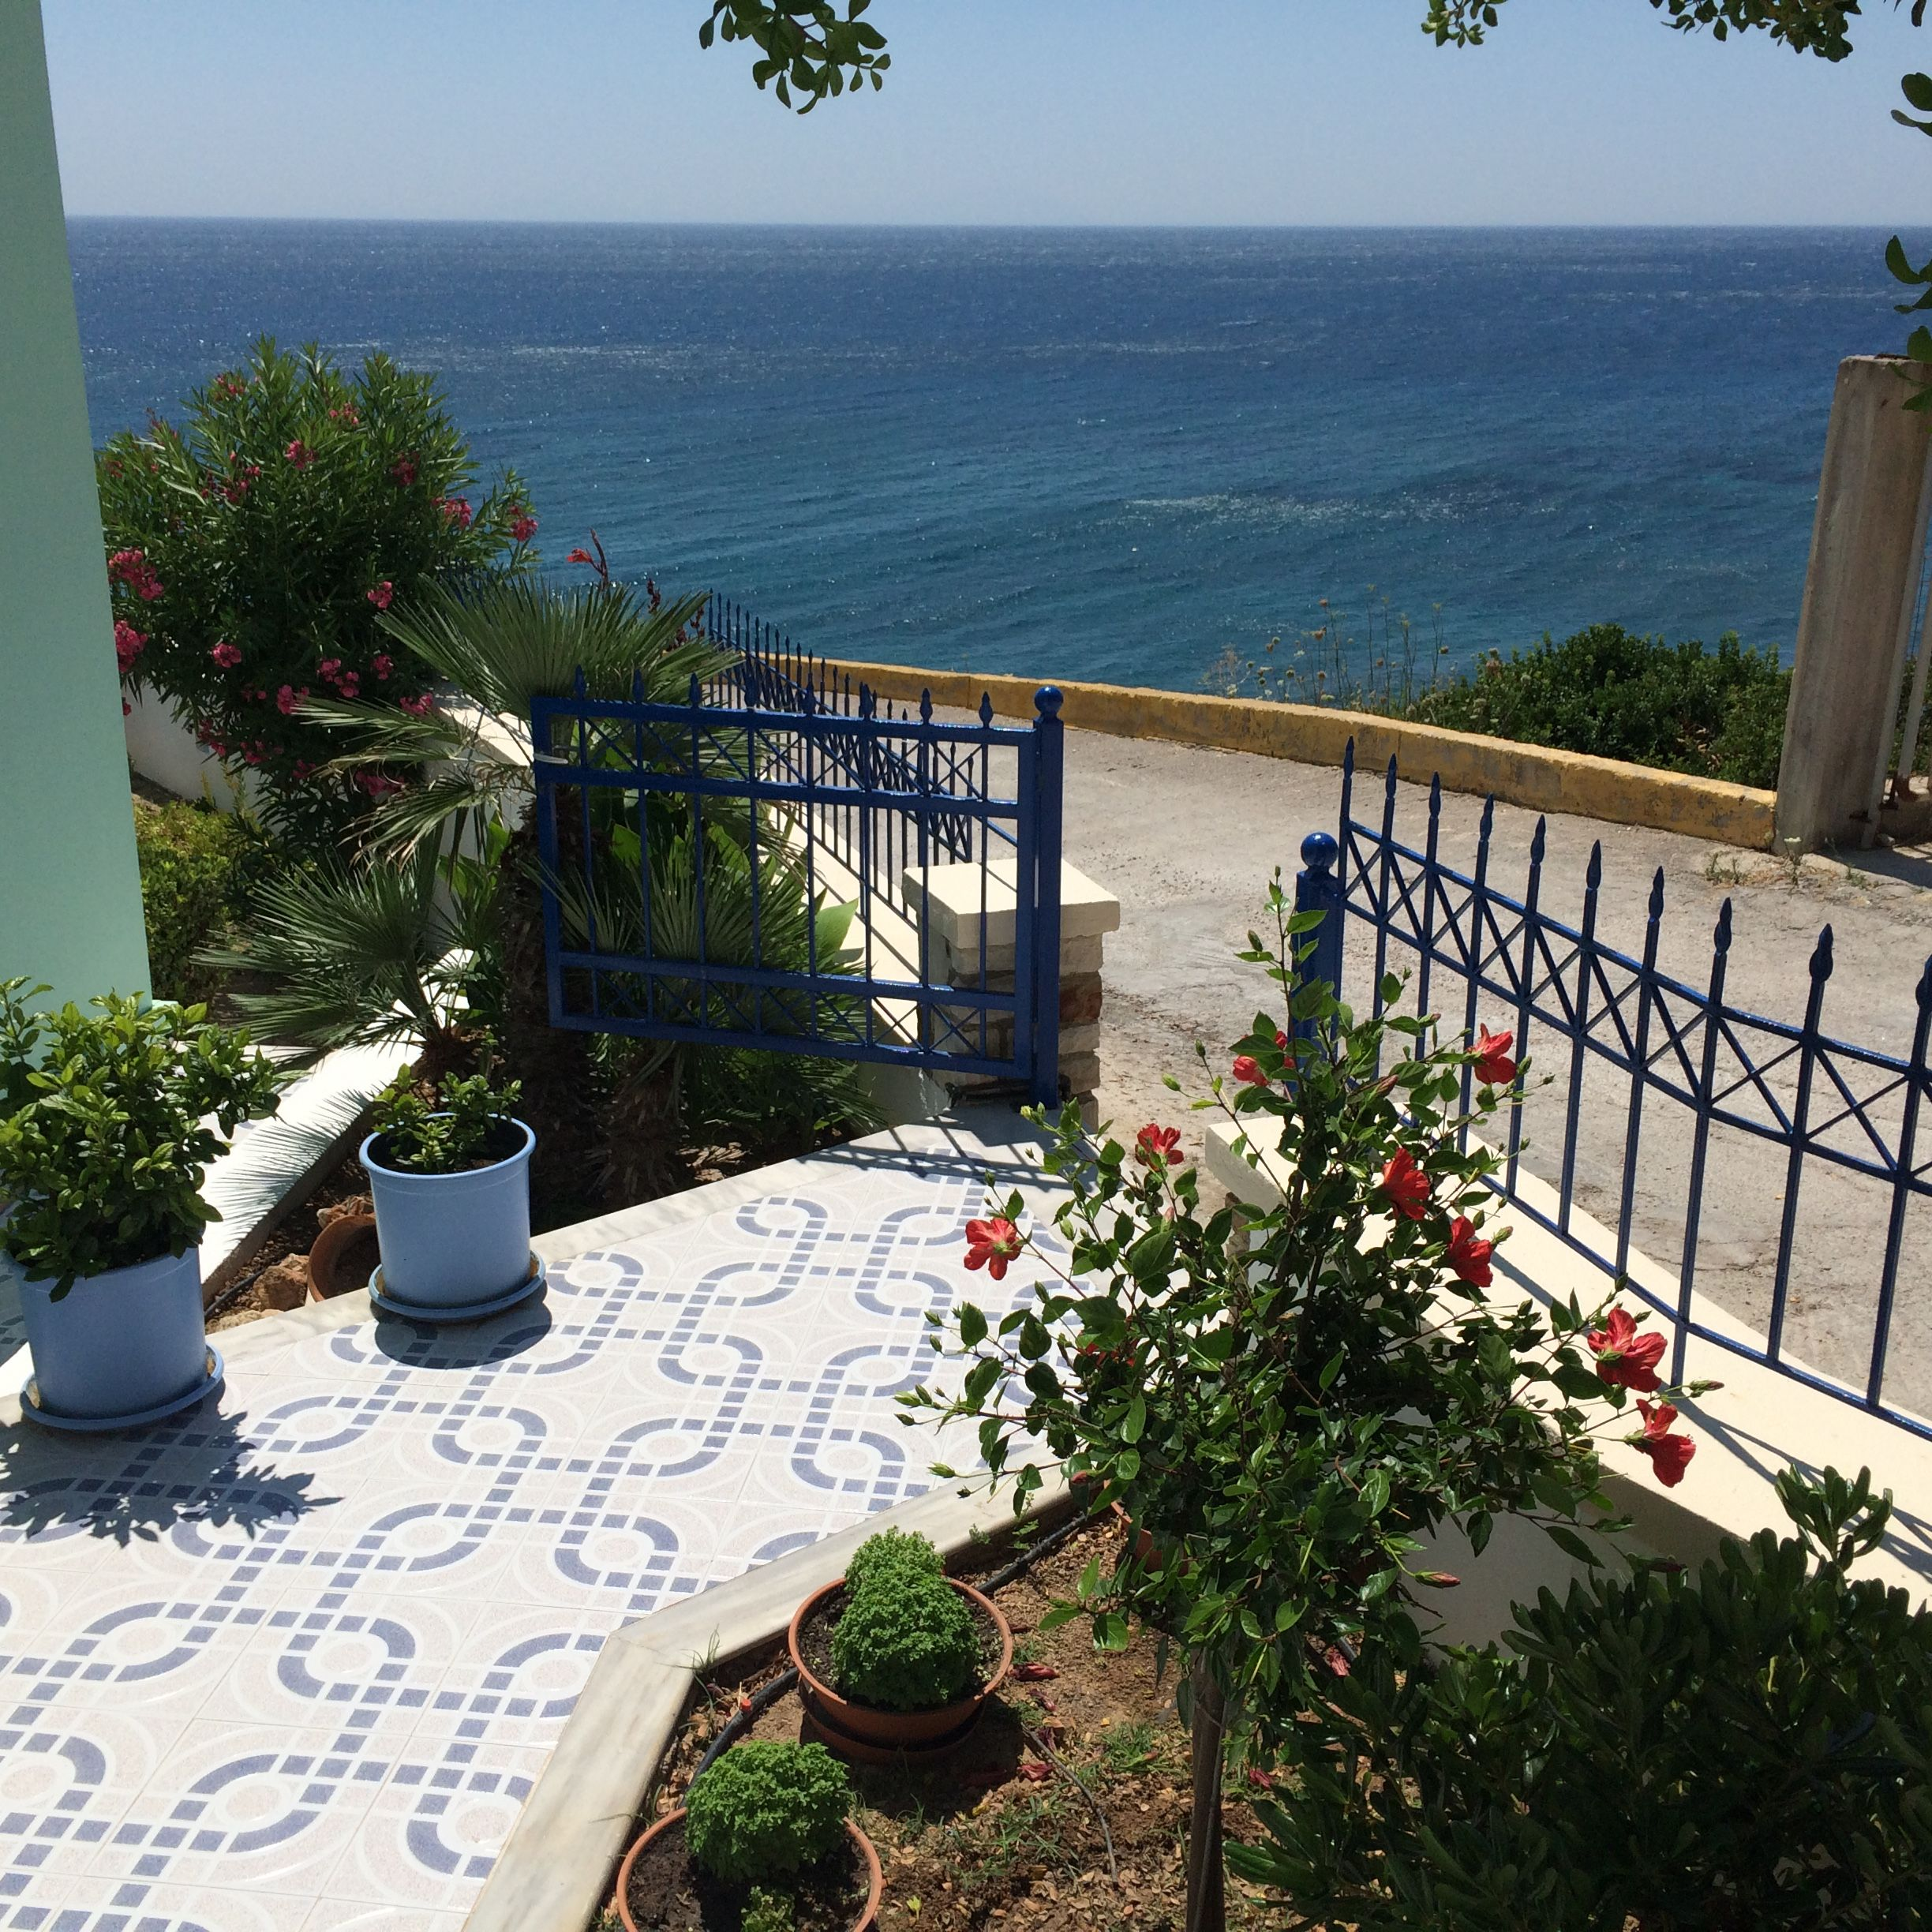 Garden View Sea Breeze Hotel Apartments Chios Gr Hotel Apartment Chios Garden View